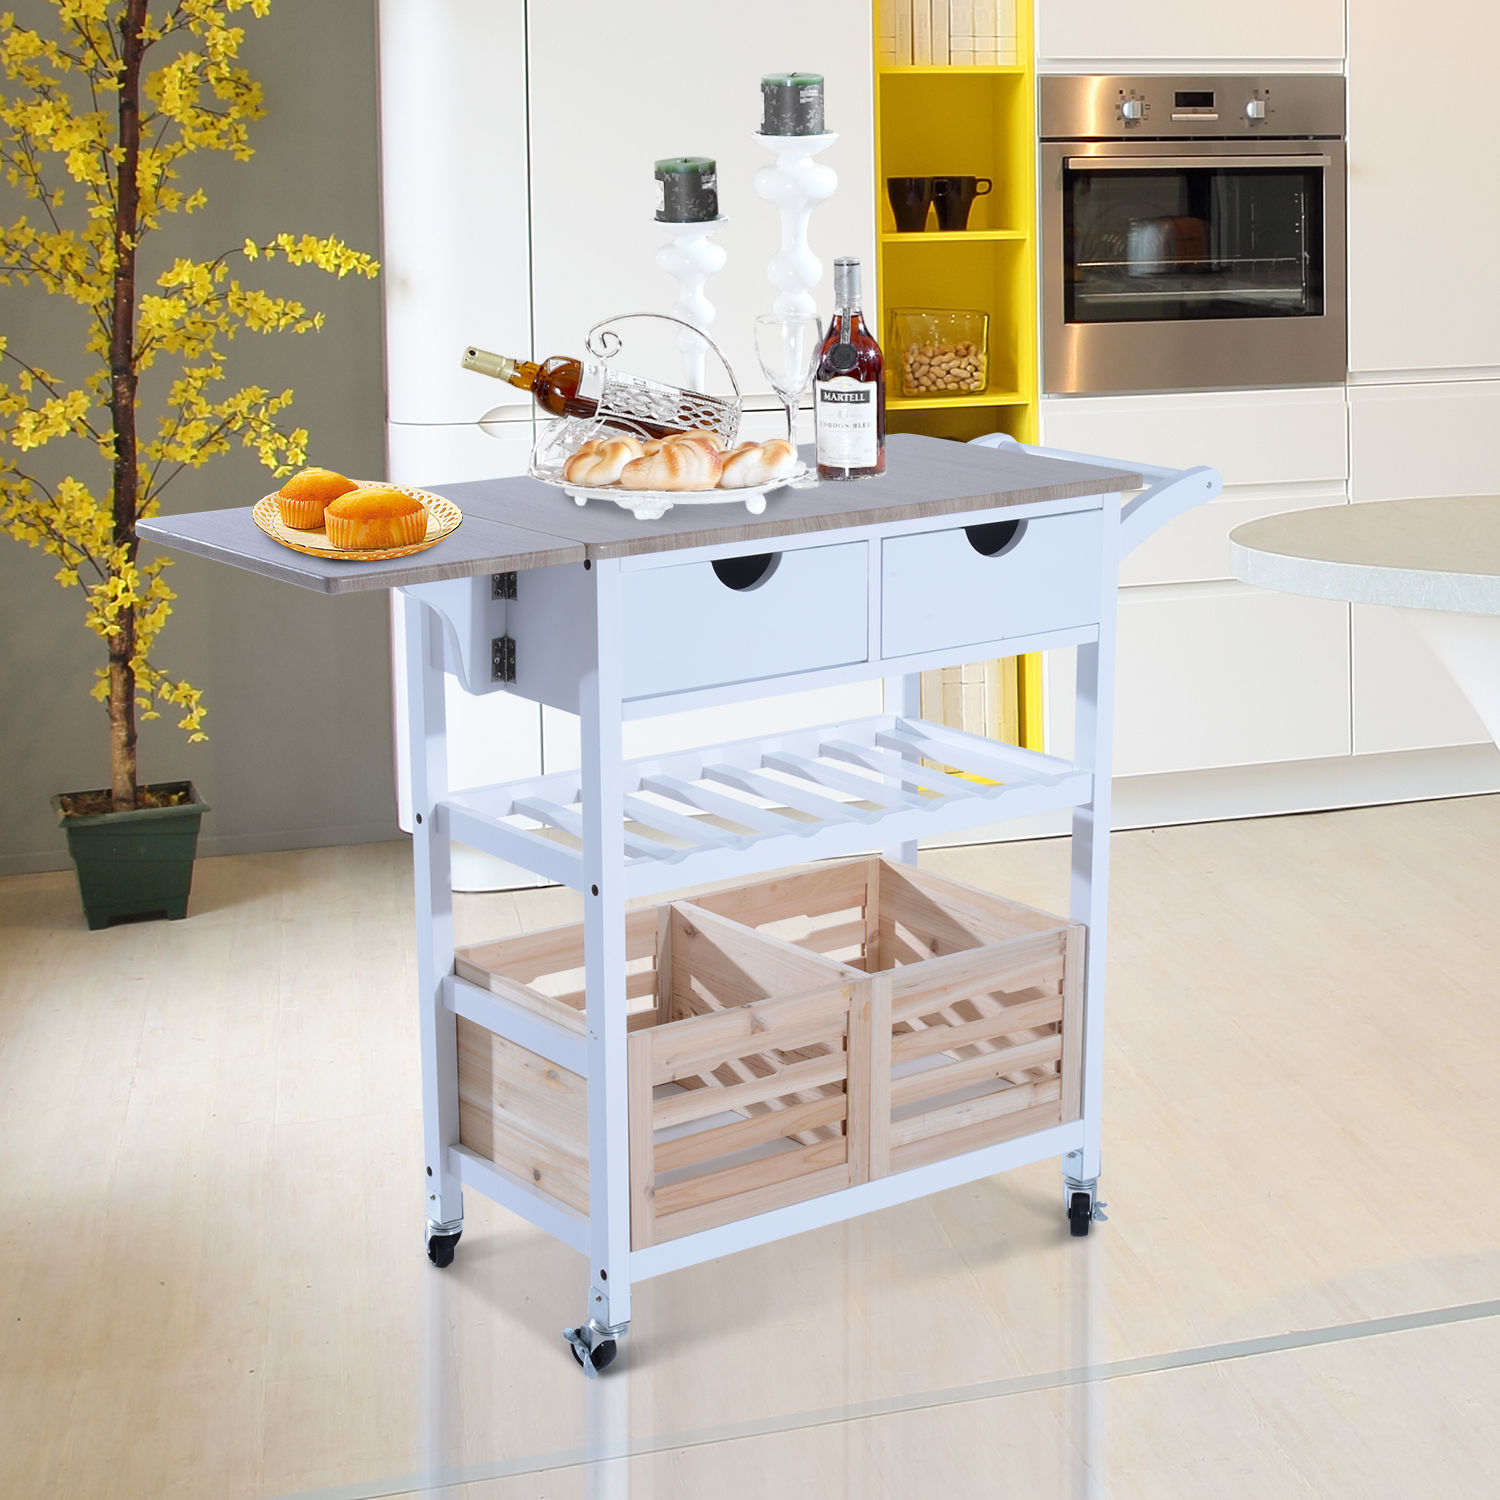 Fantastic Details About Folding Drop Leaf Kitchen Island Trolley Cart Storage Drawers Baskets Rolling Download Free Architecture Designs Scobabritishbridgeorg